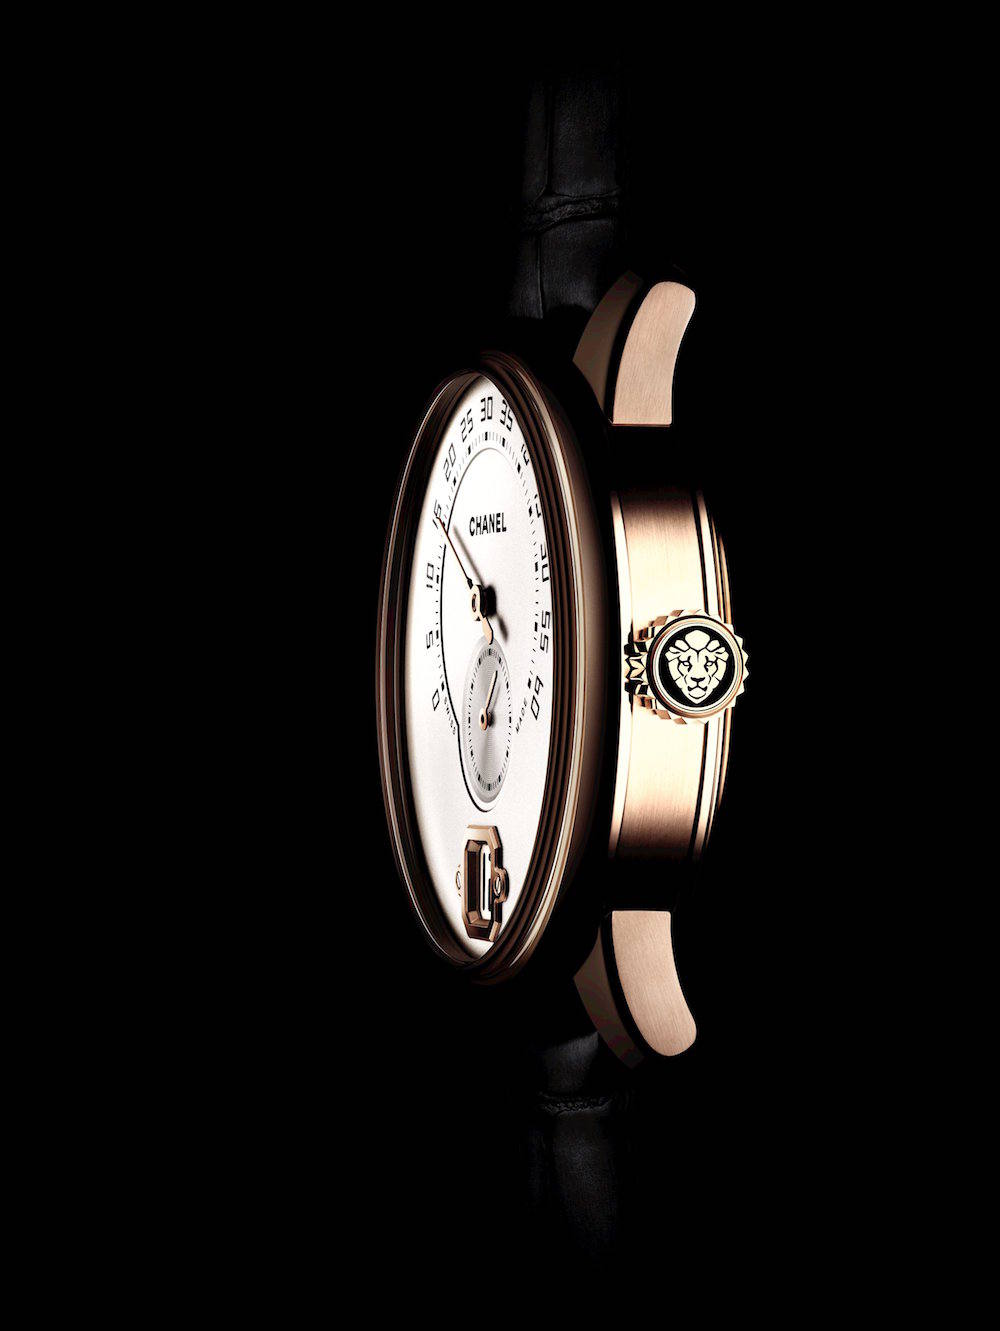 Monsieur de CHANEL watch profile 1